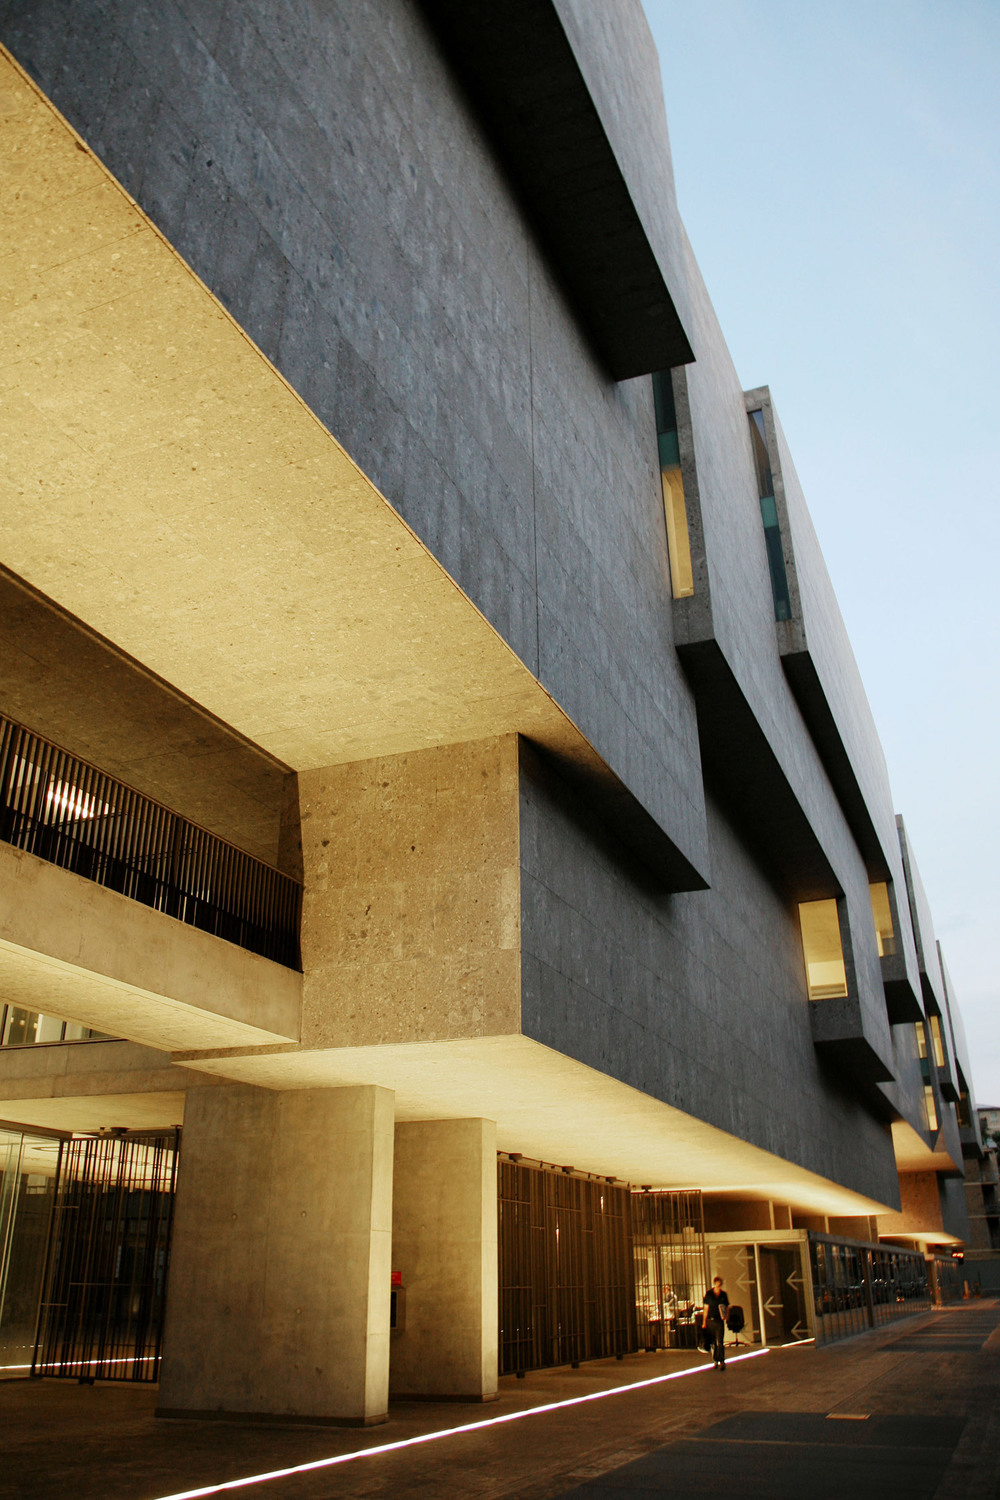 Universita-Commerciale-Luigi-Bocconi-Stepped-Facade-Evening.jpg